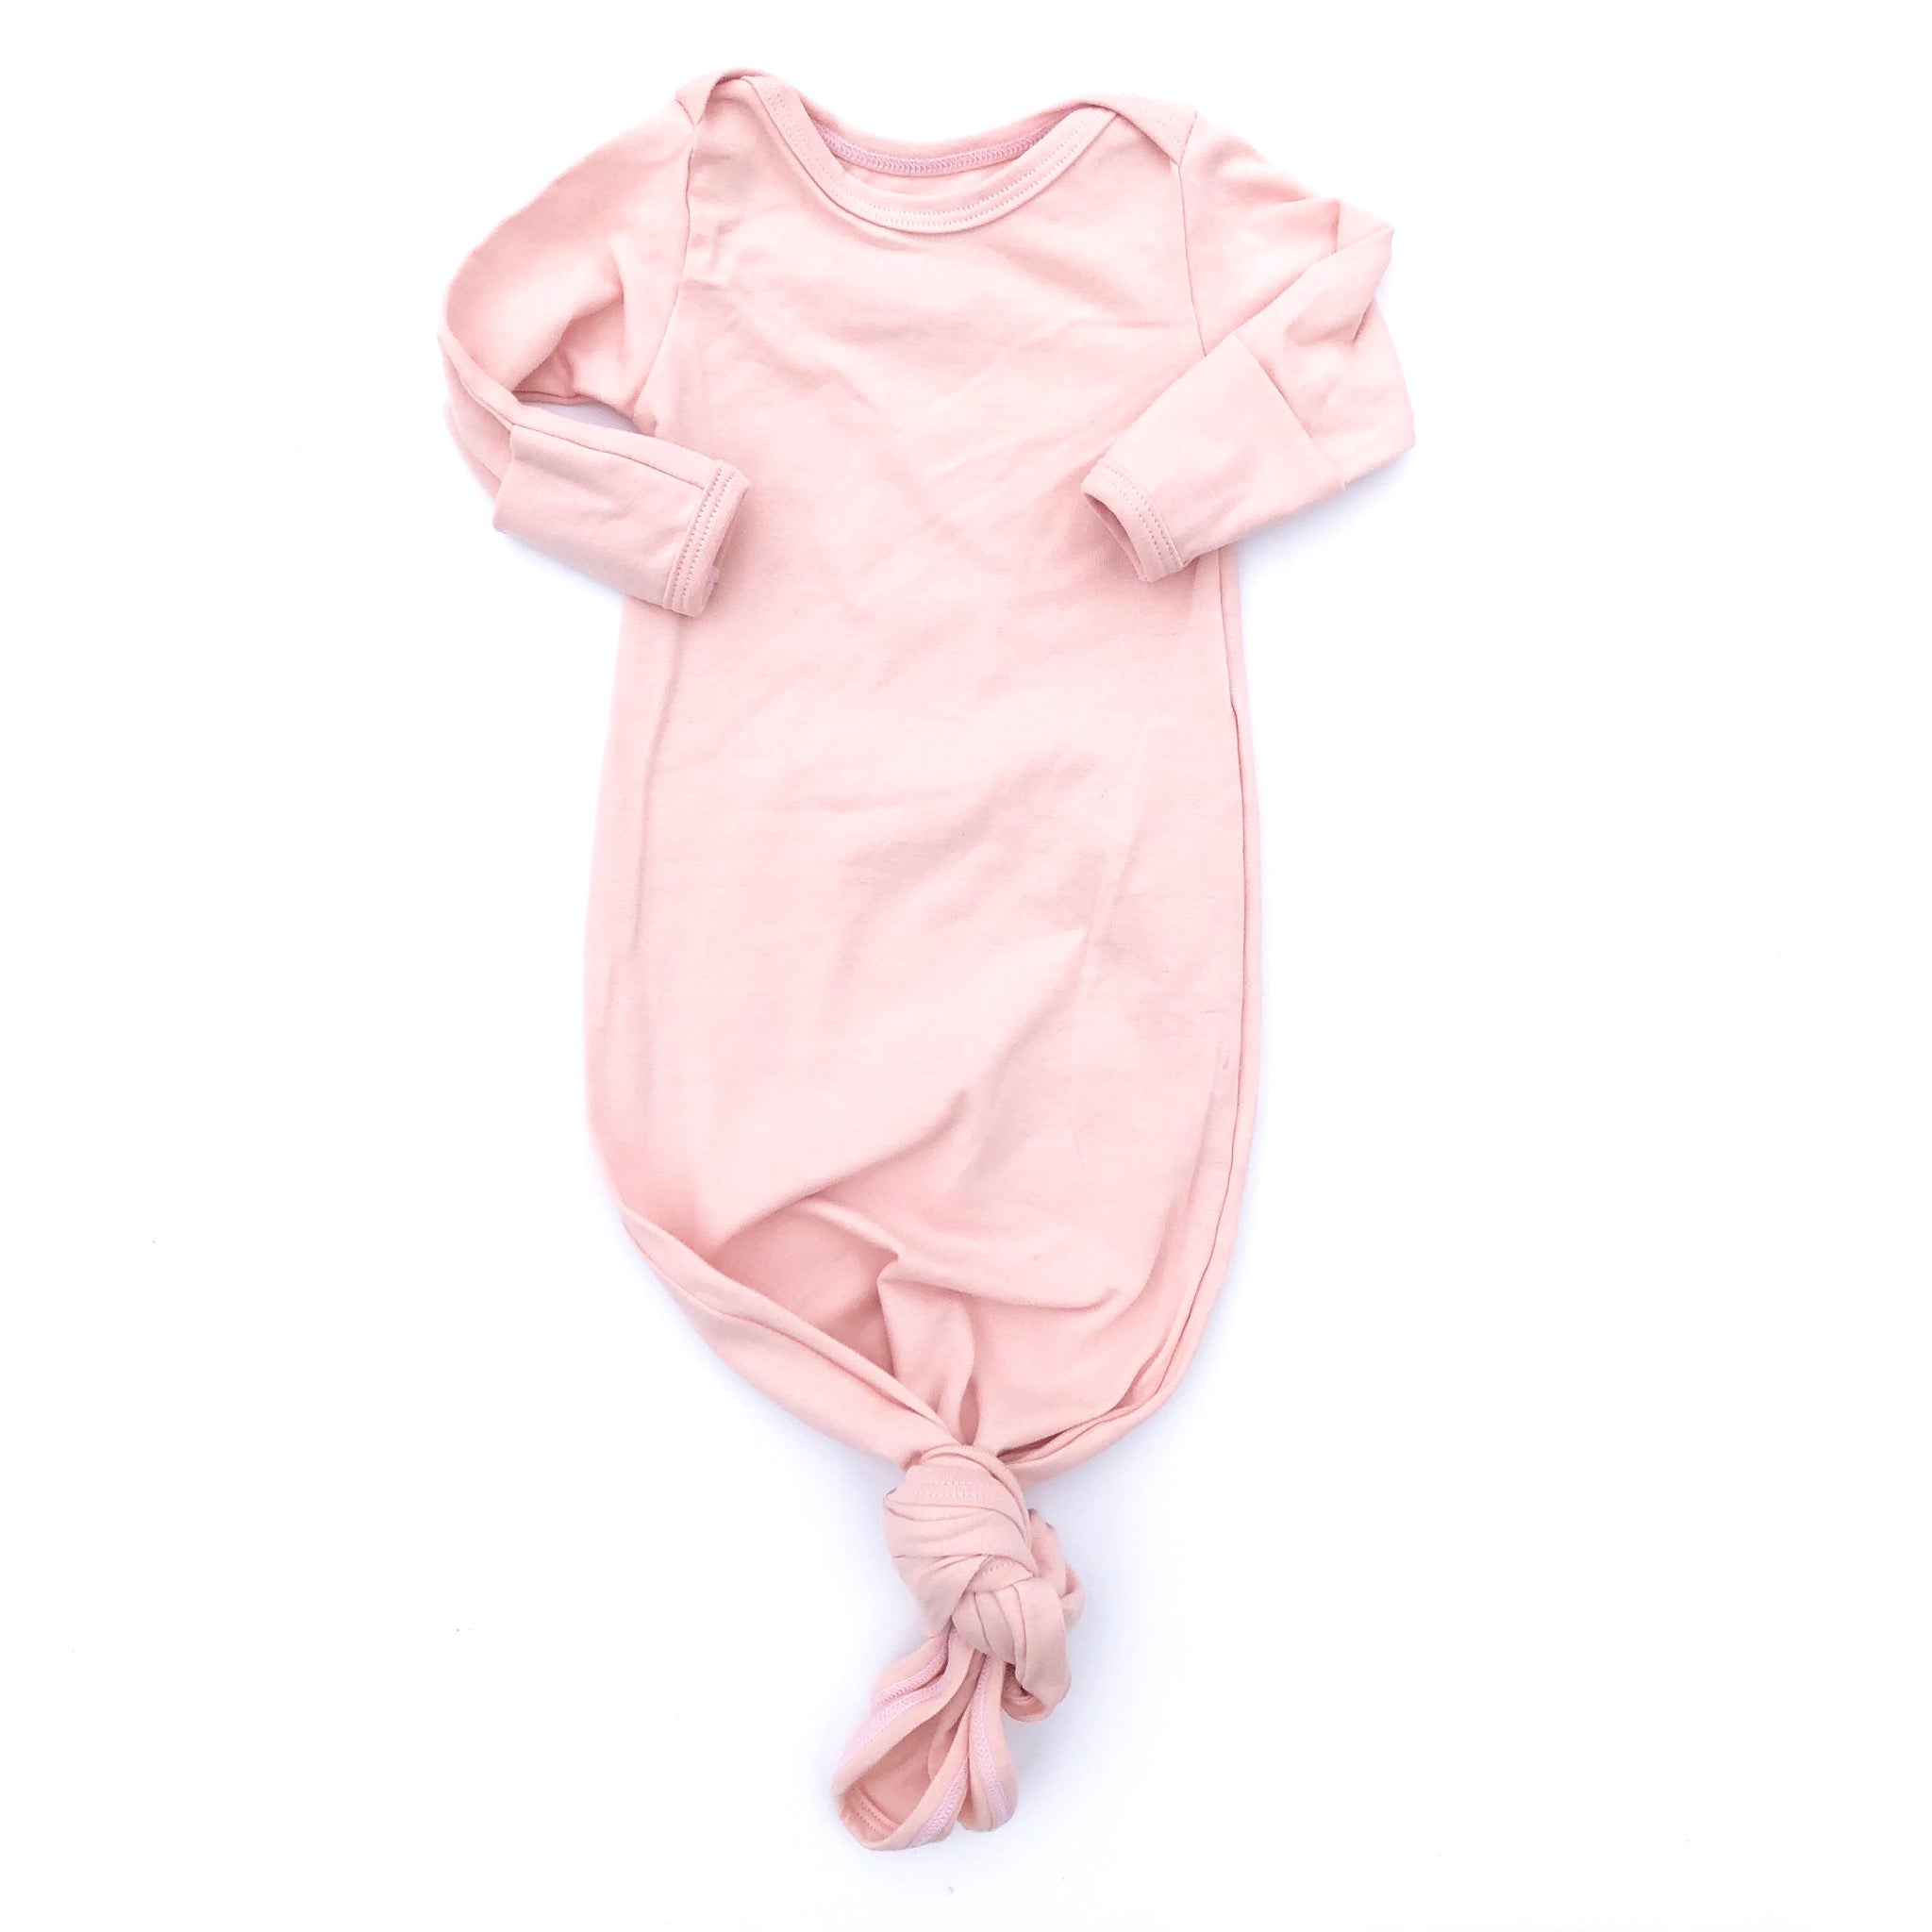 Blush Knotted Bottom Baby Layette Gown